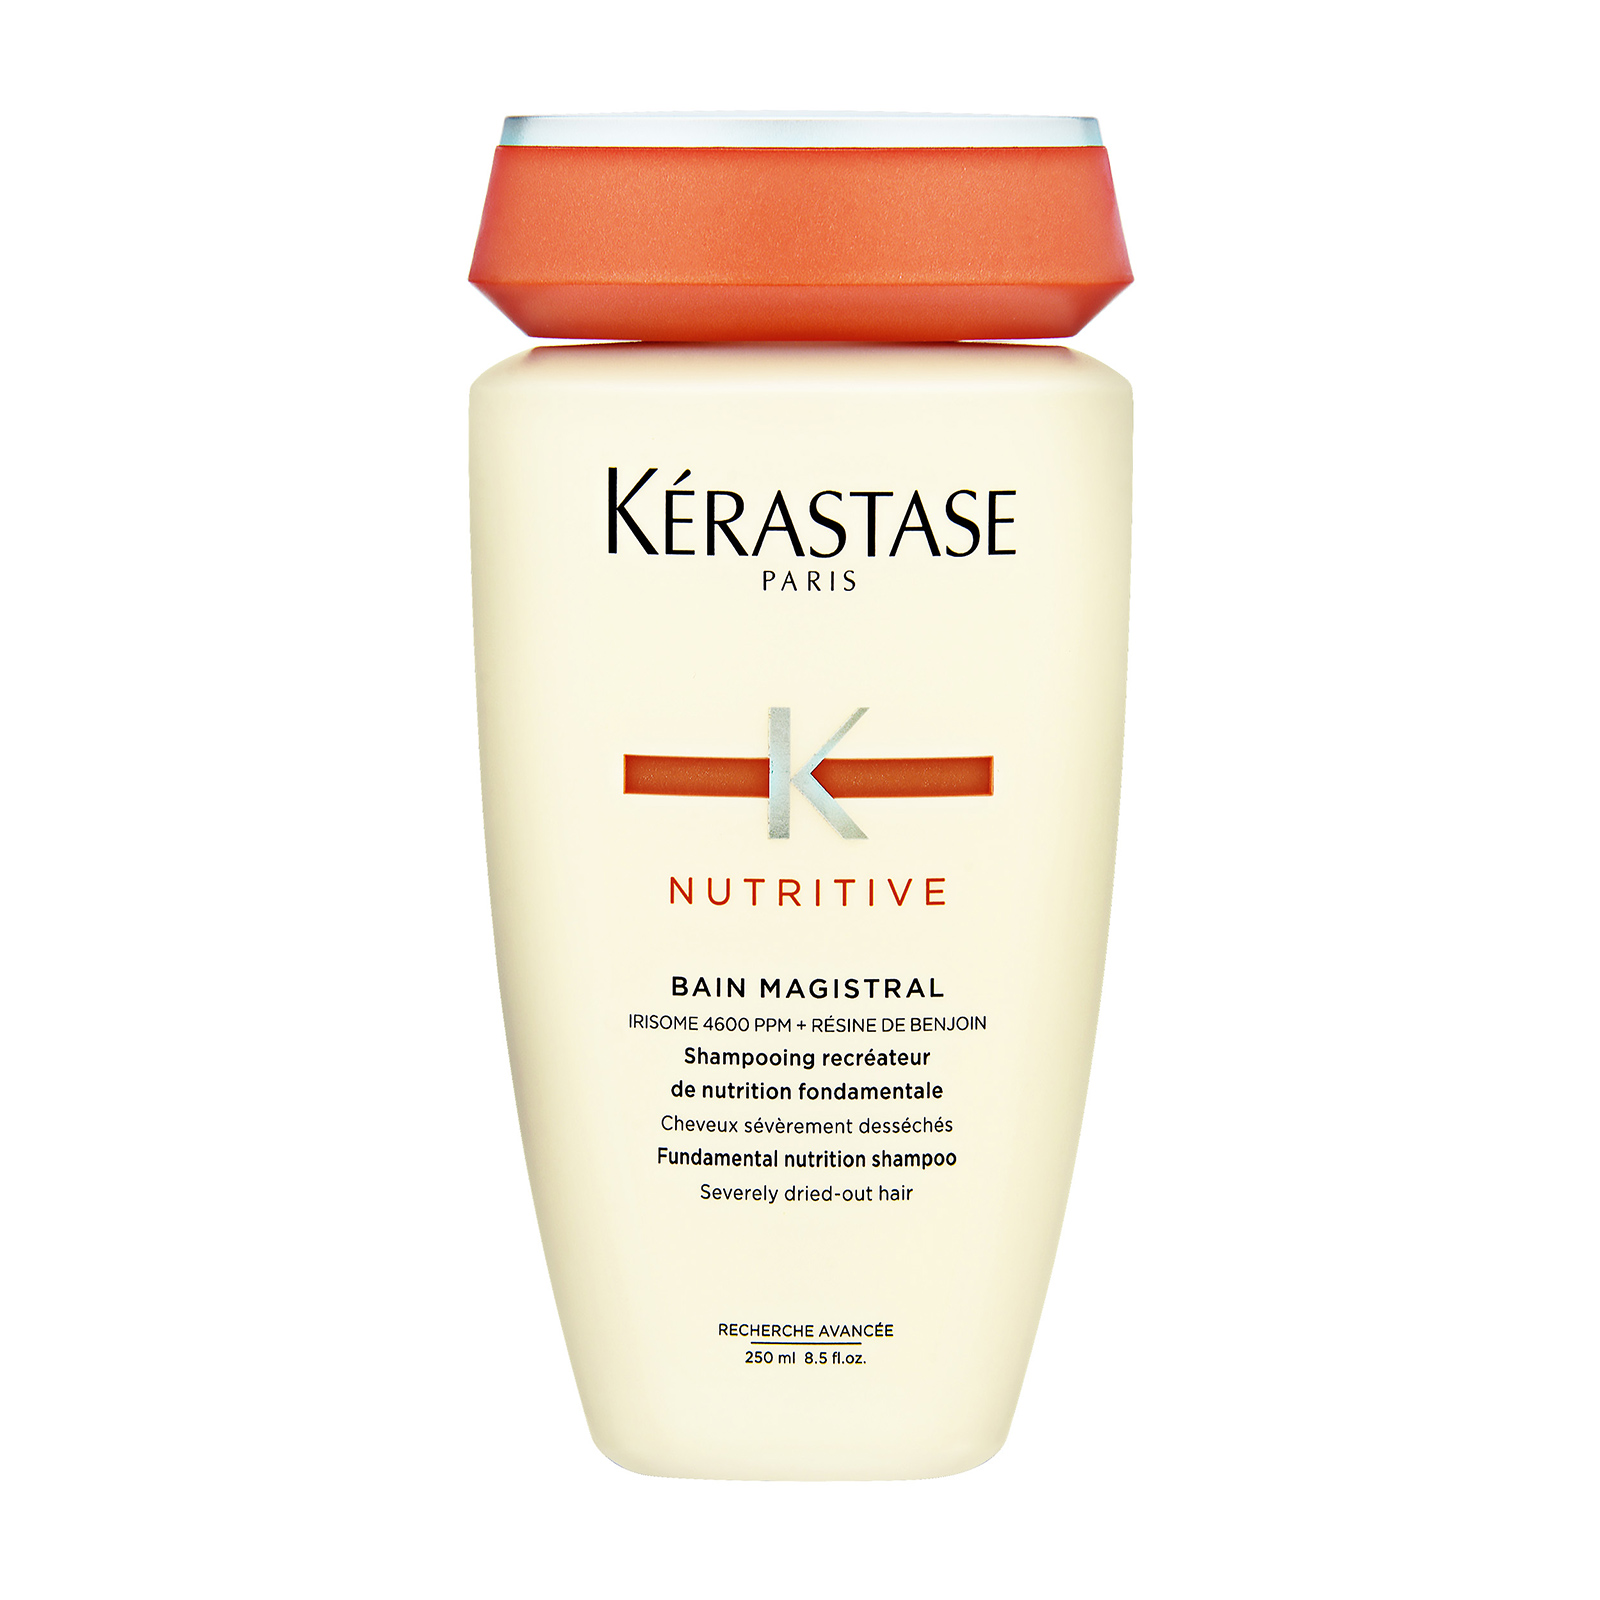 Kérastase Paris Nutritive  Bain Magistral Fundamental Nutrition Shampoo (Severely Dried-Out Hair) 8.5oz, 250ml